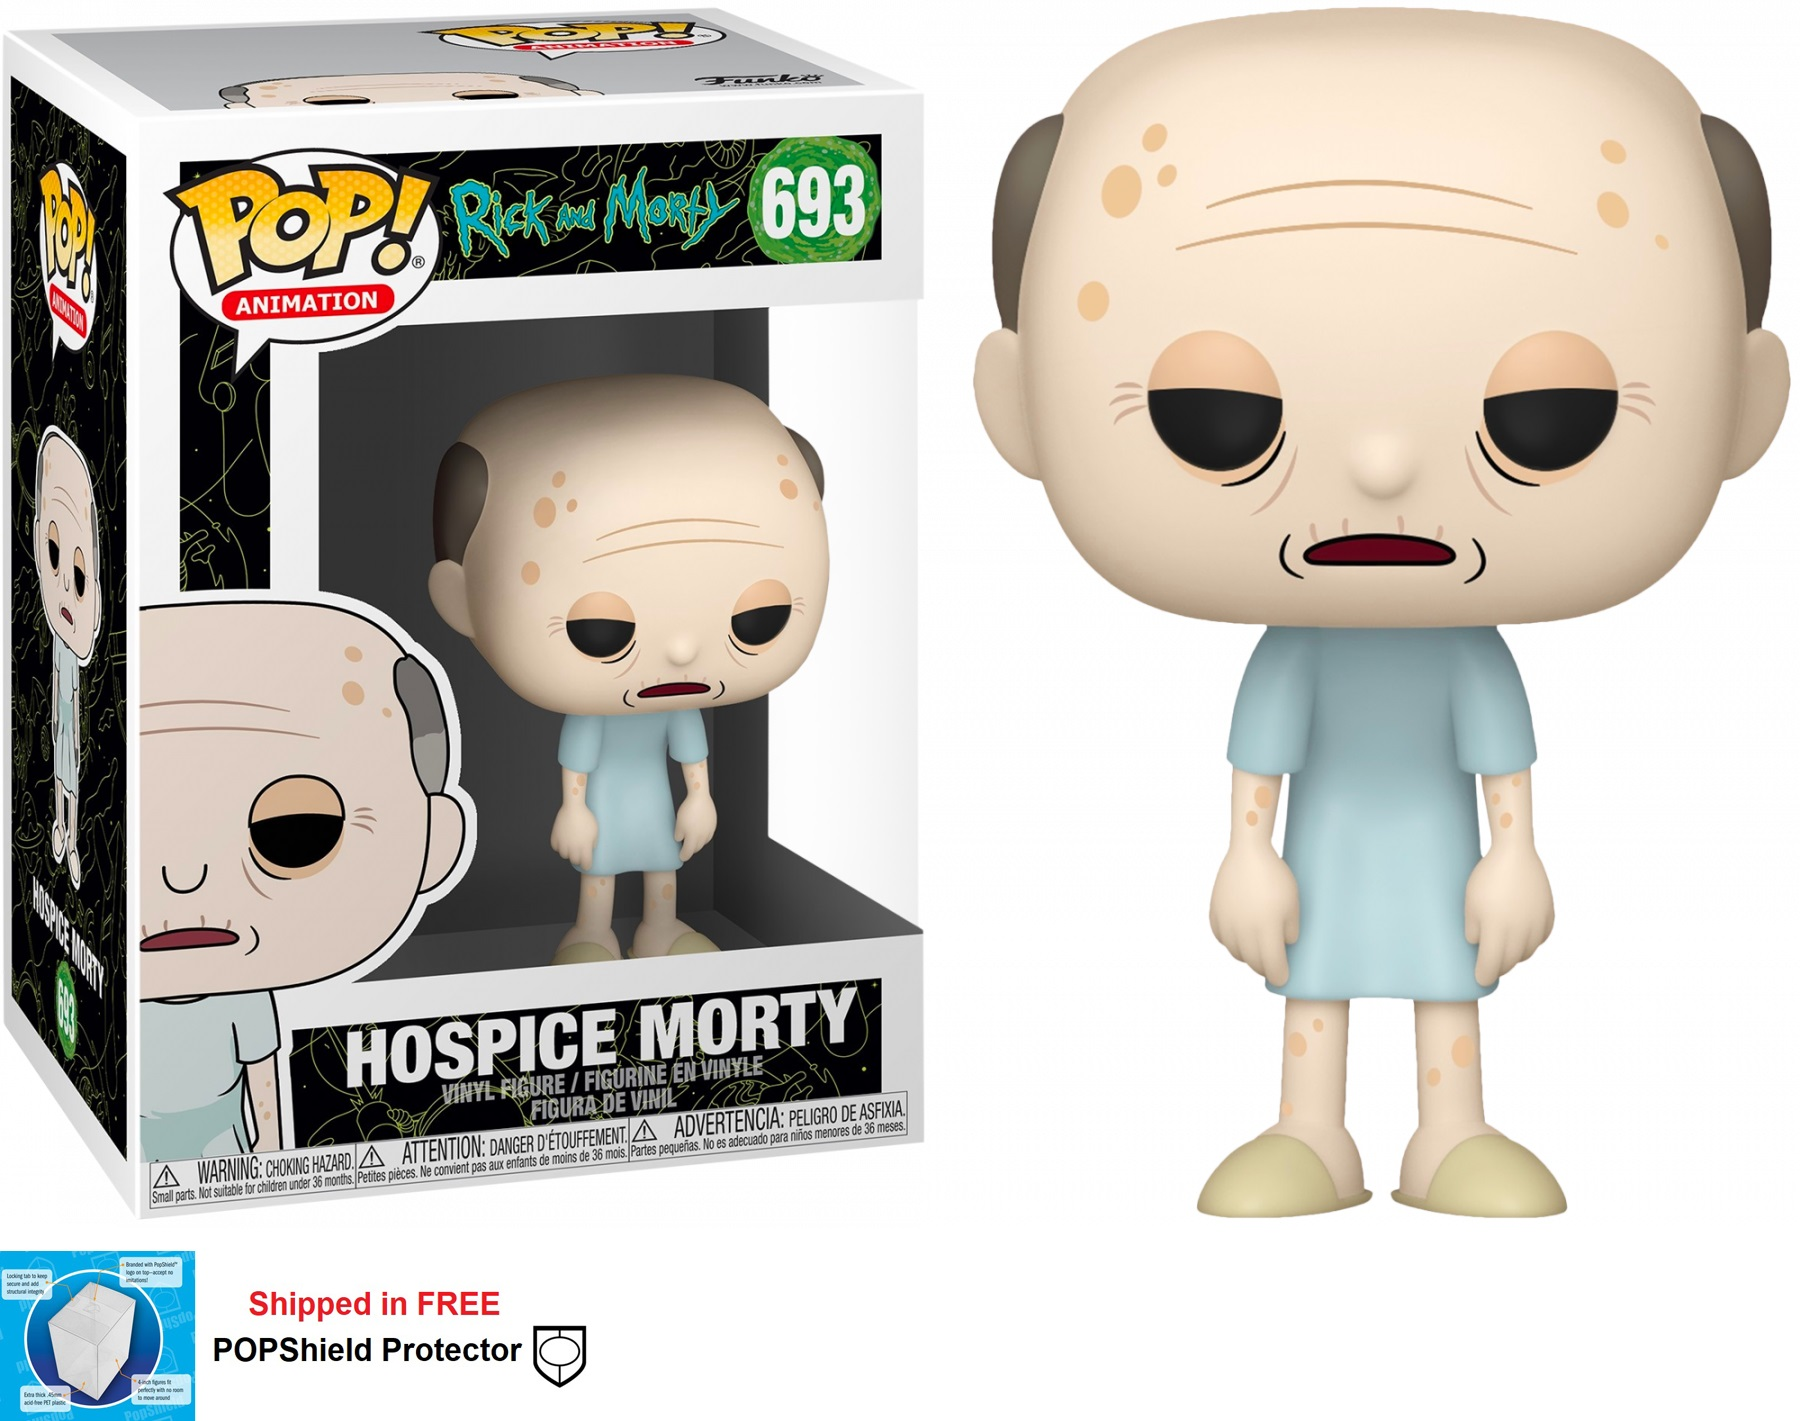 Funko POP Animation Rick and Morty Hospice Morty #693